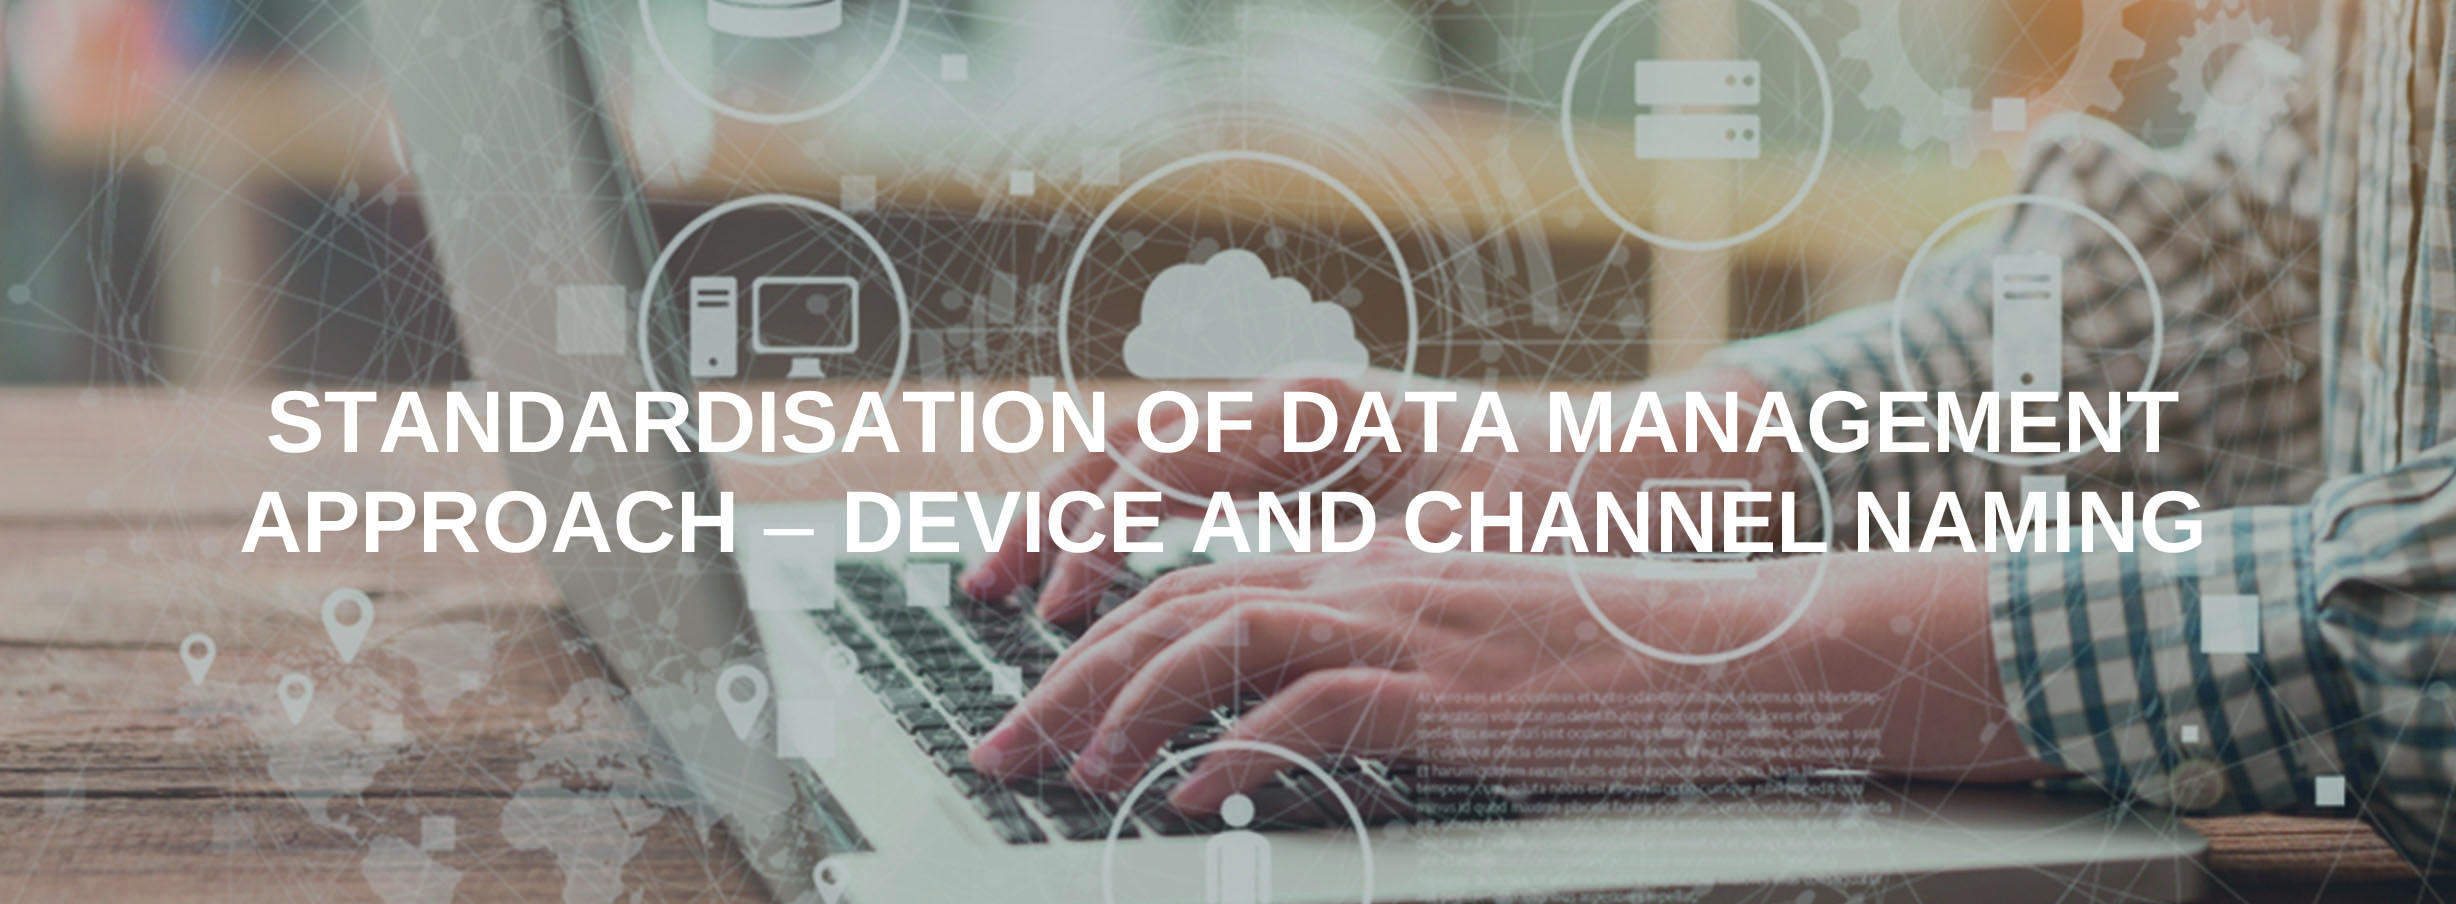 Standardisation of Data Management Approach – Device and Channel Naming